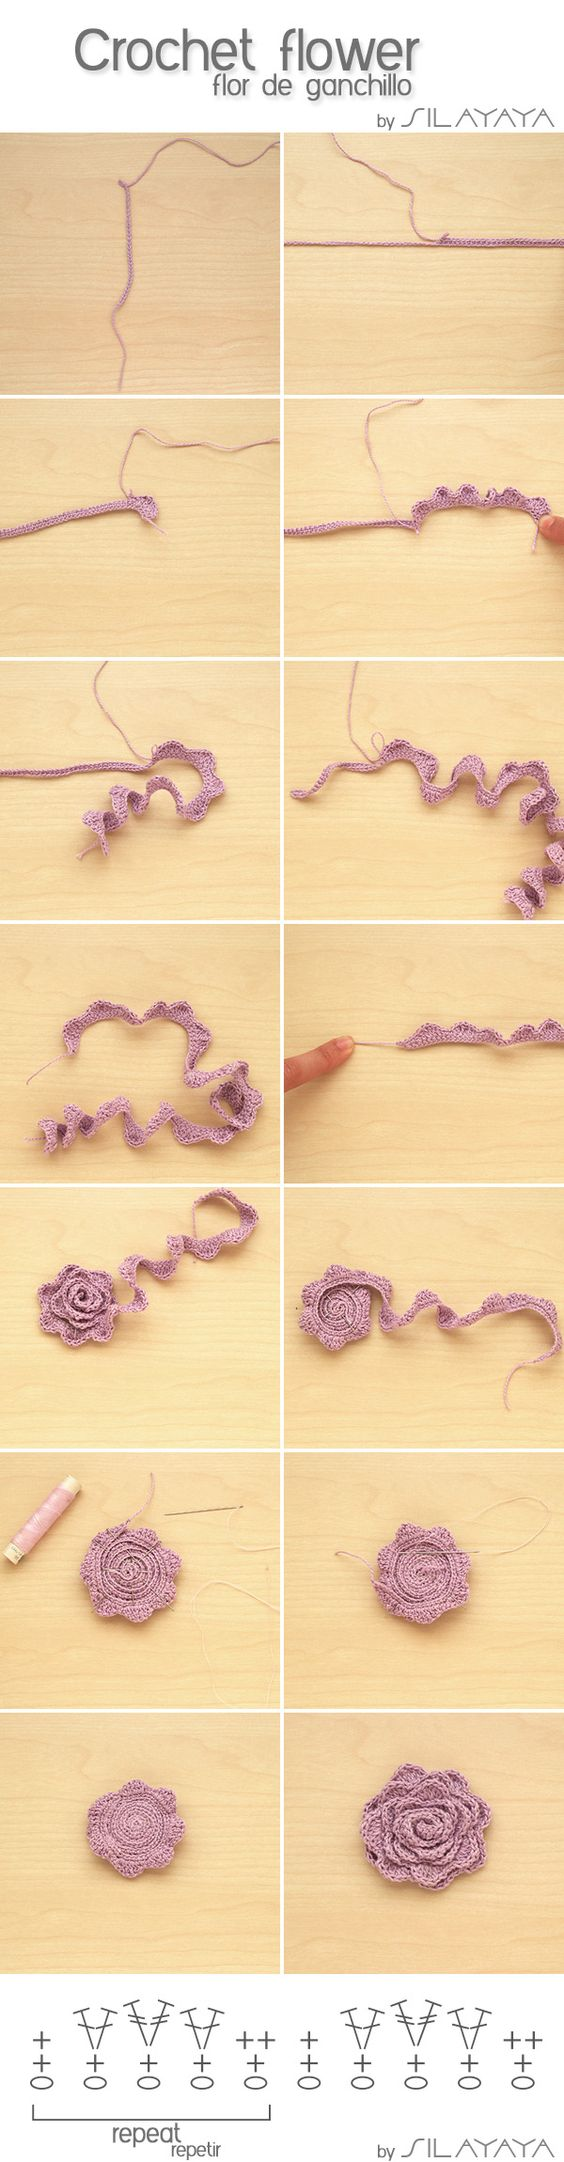 Tutorial How to crochet a flower: